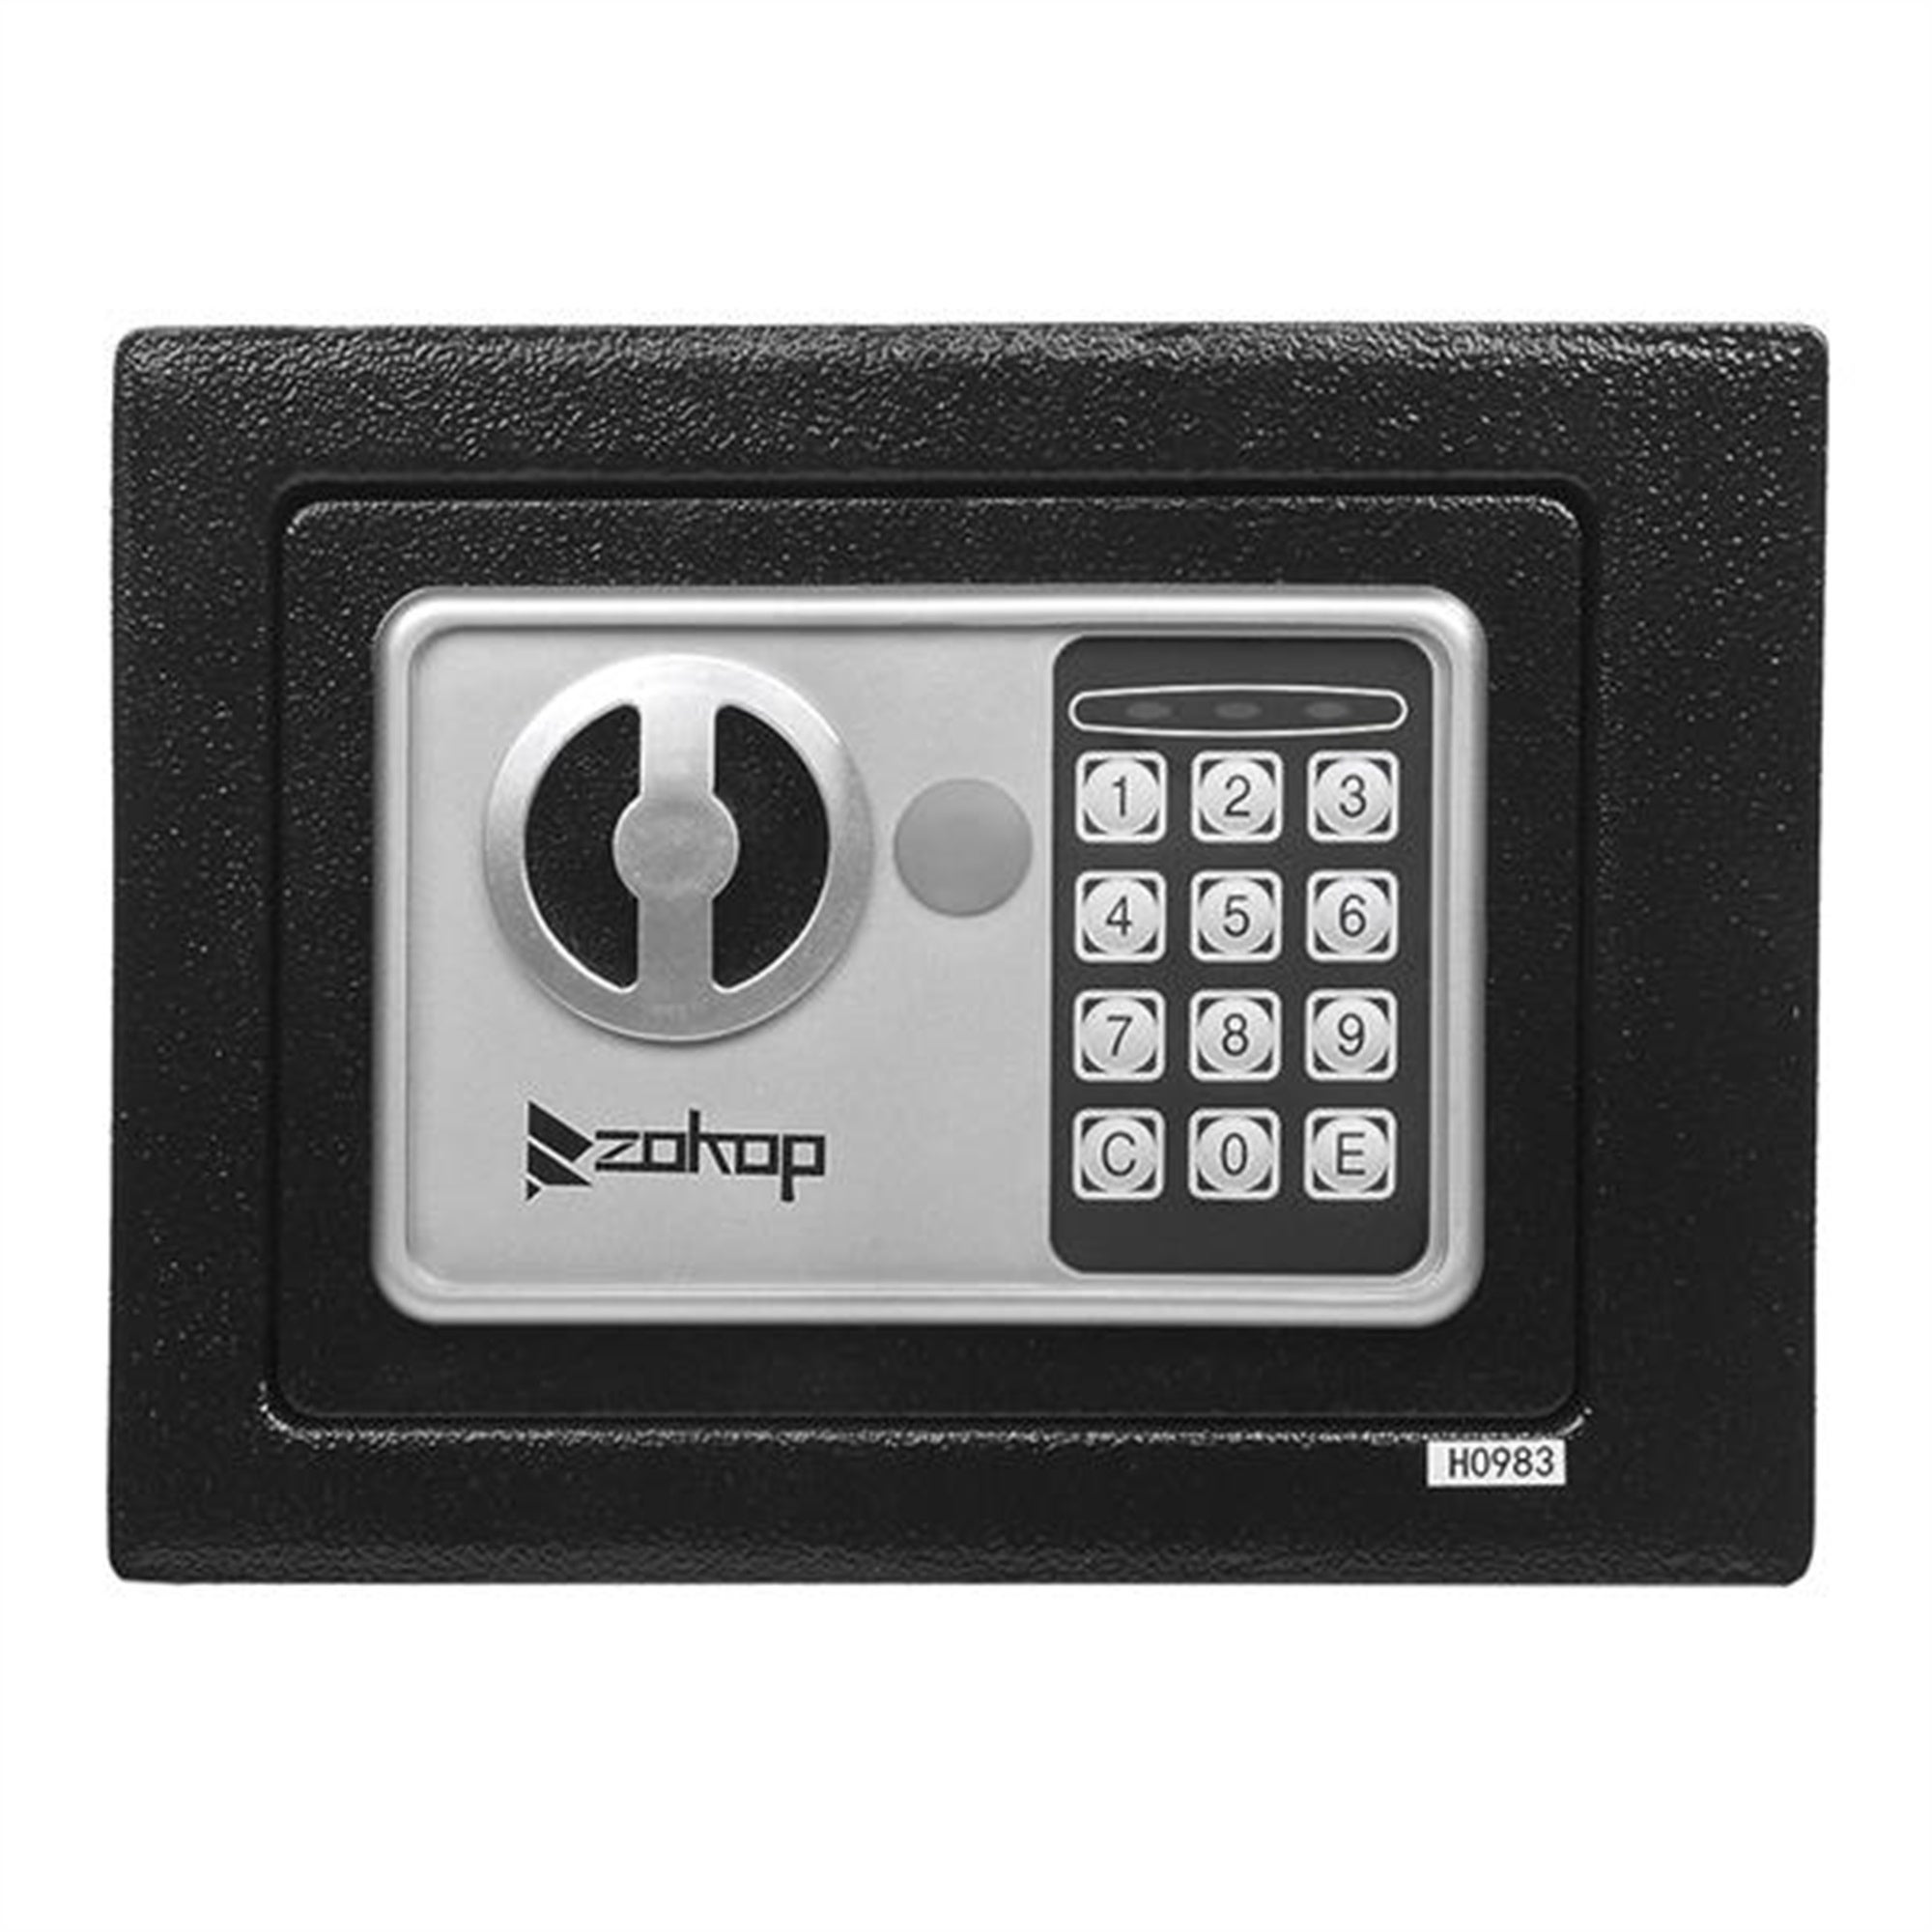 Waqiv Mini Wall-in Style Electronic Code Metal Steel Box Safe Case 6.89H Home Small Digital Security Safe Box Wall with Lock for Jewellery Money Valuables